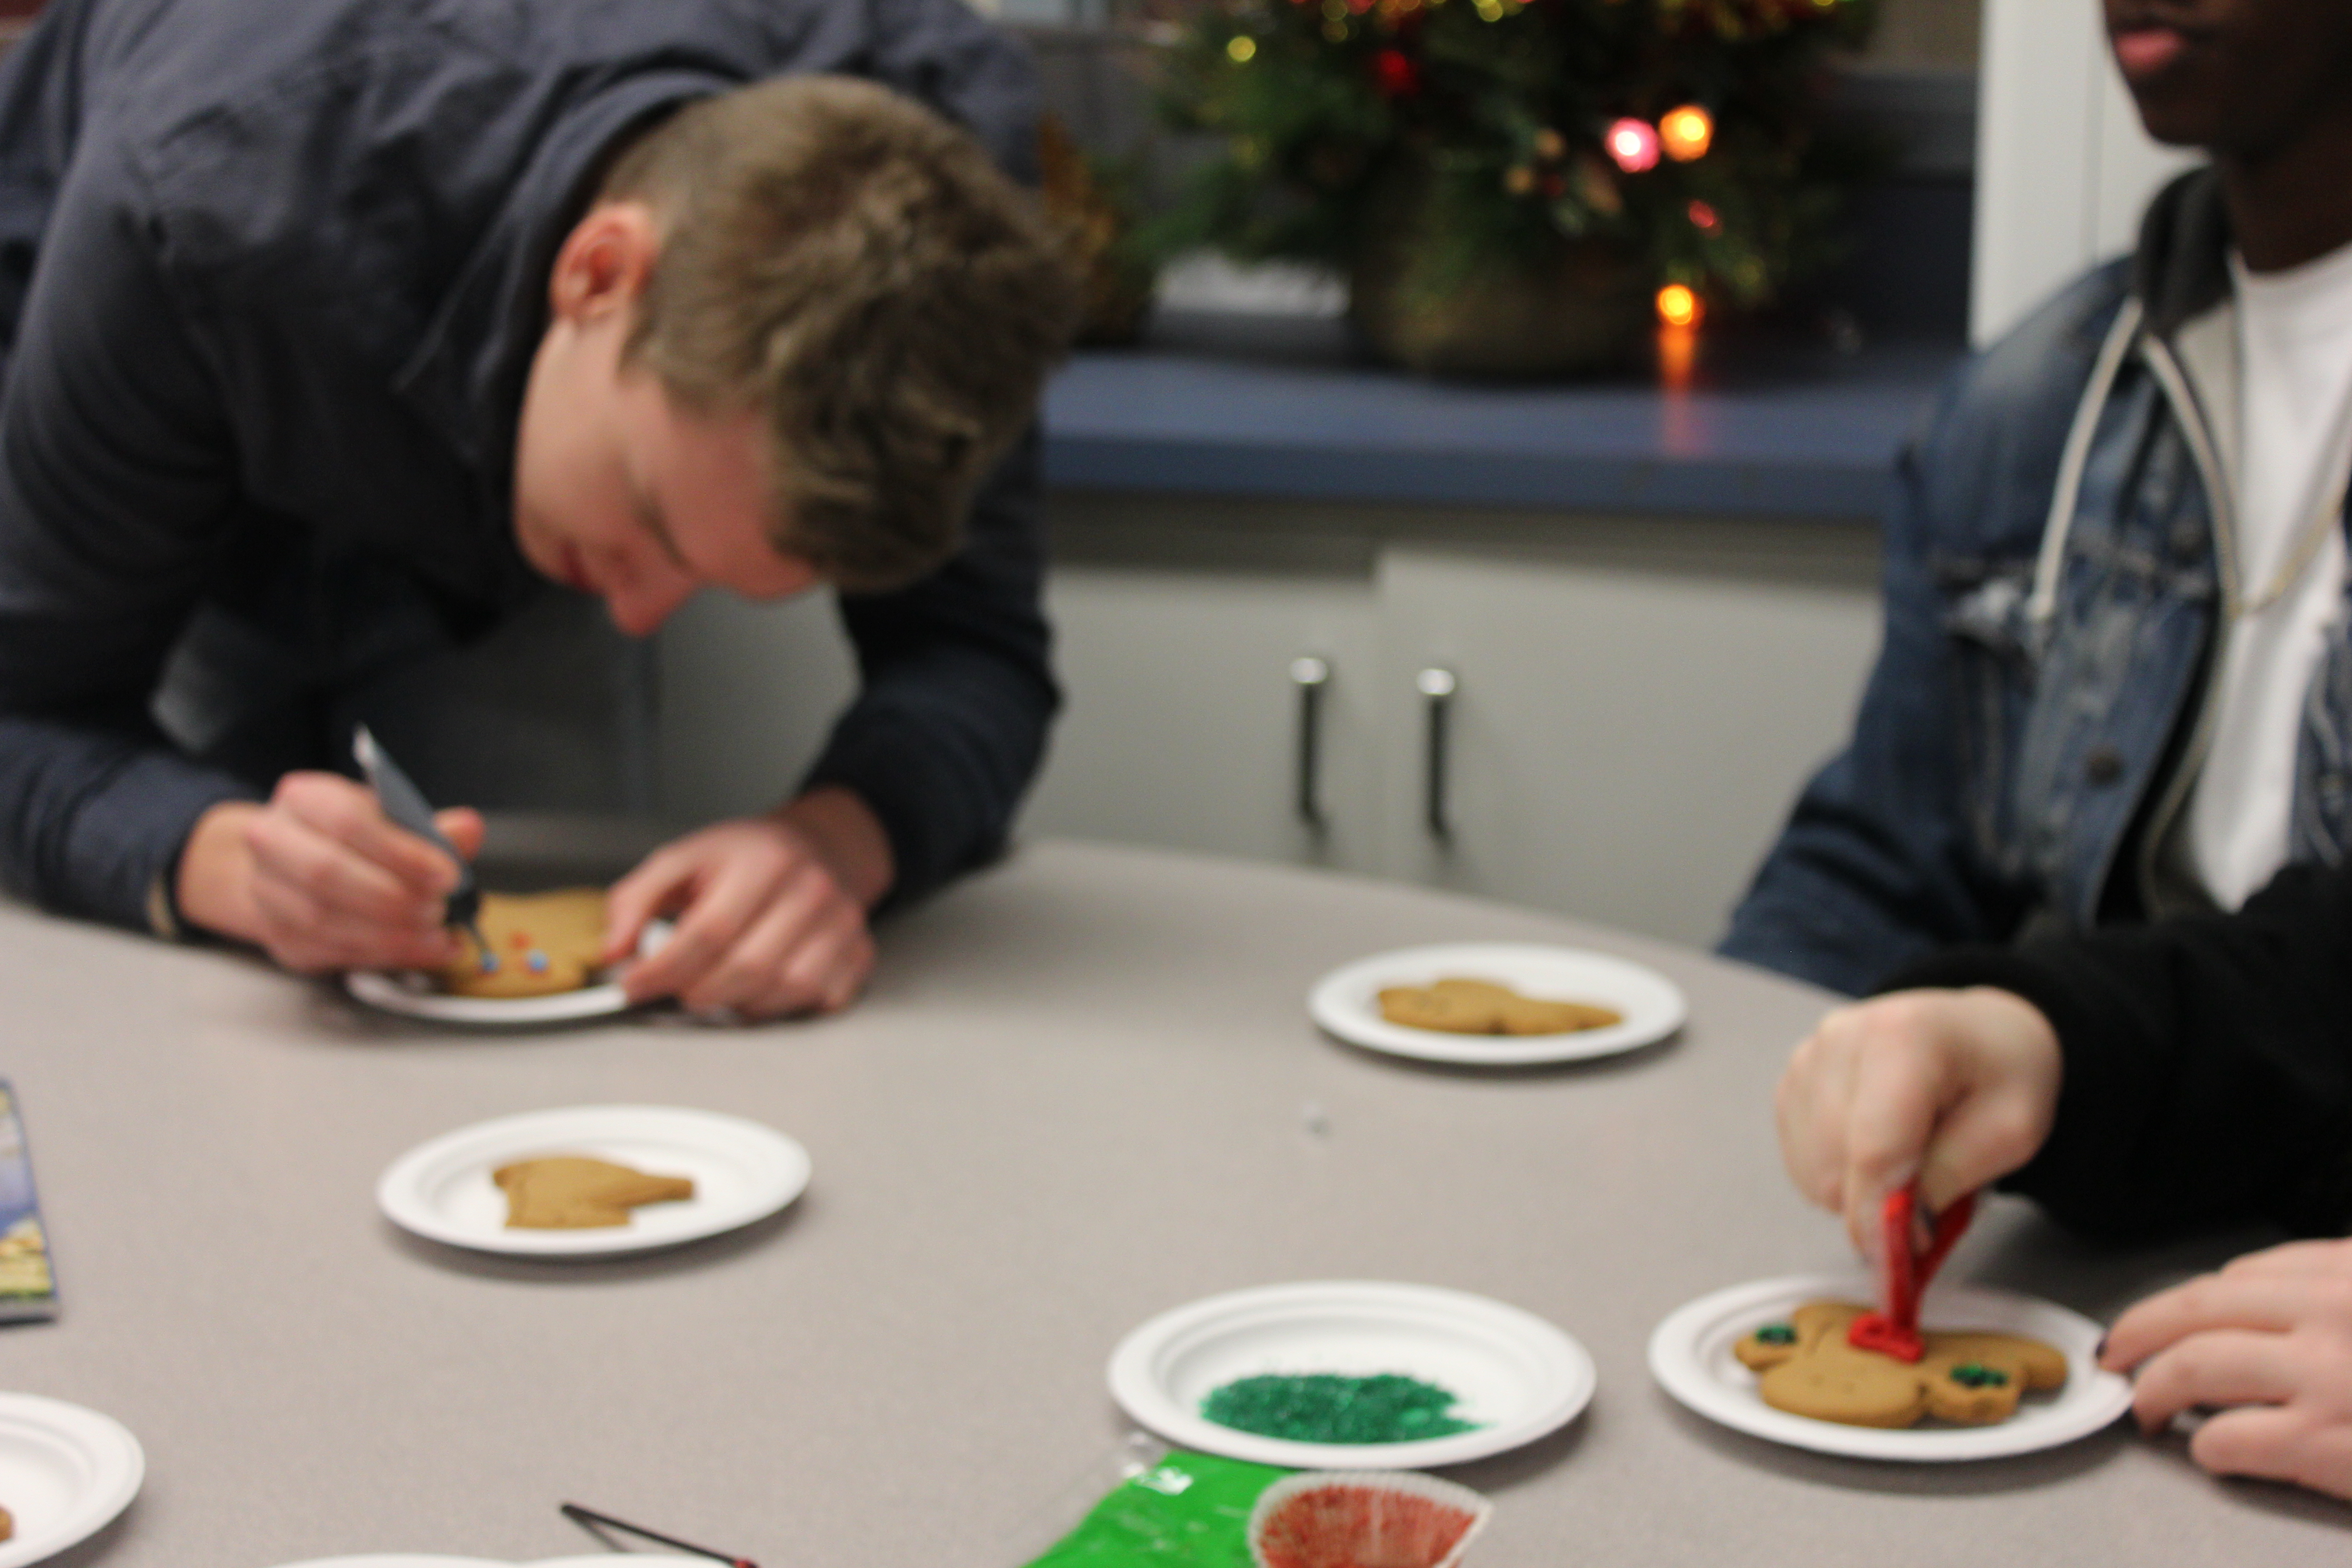 decorating the gingerbread people